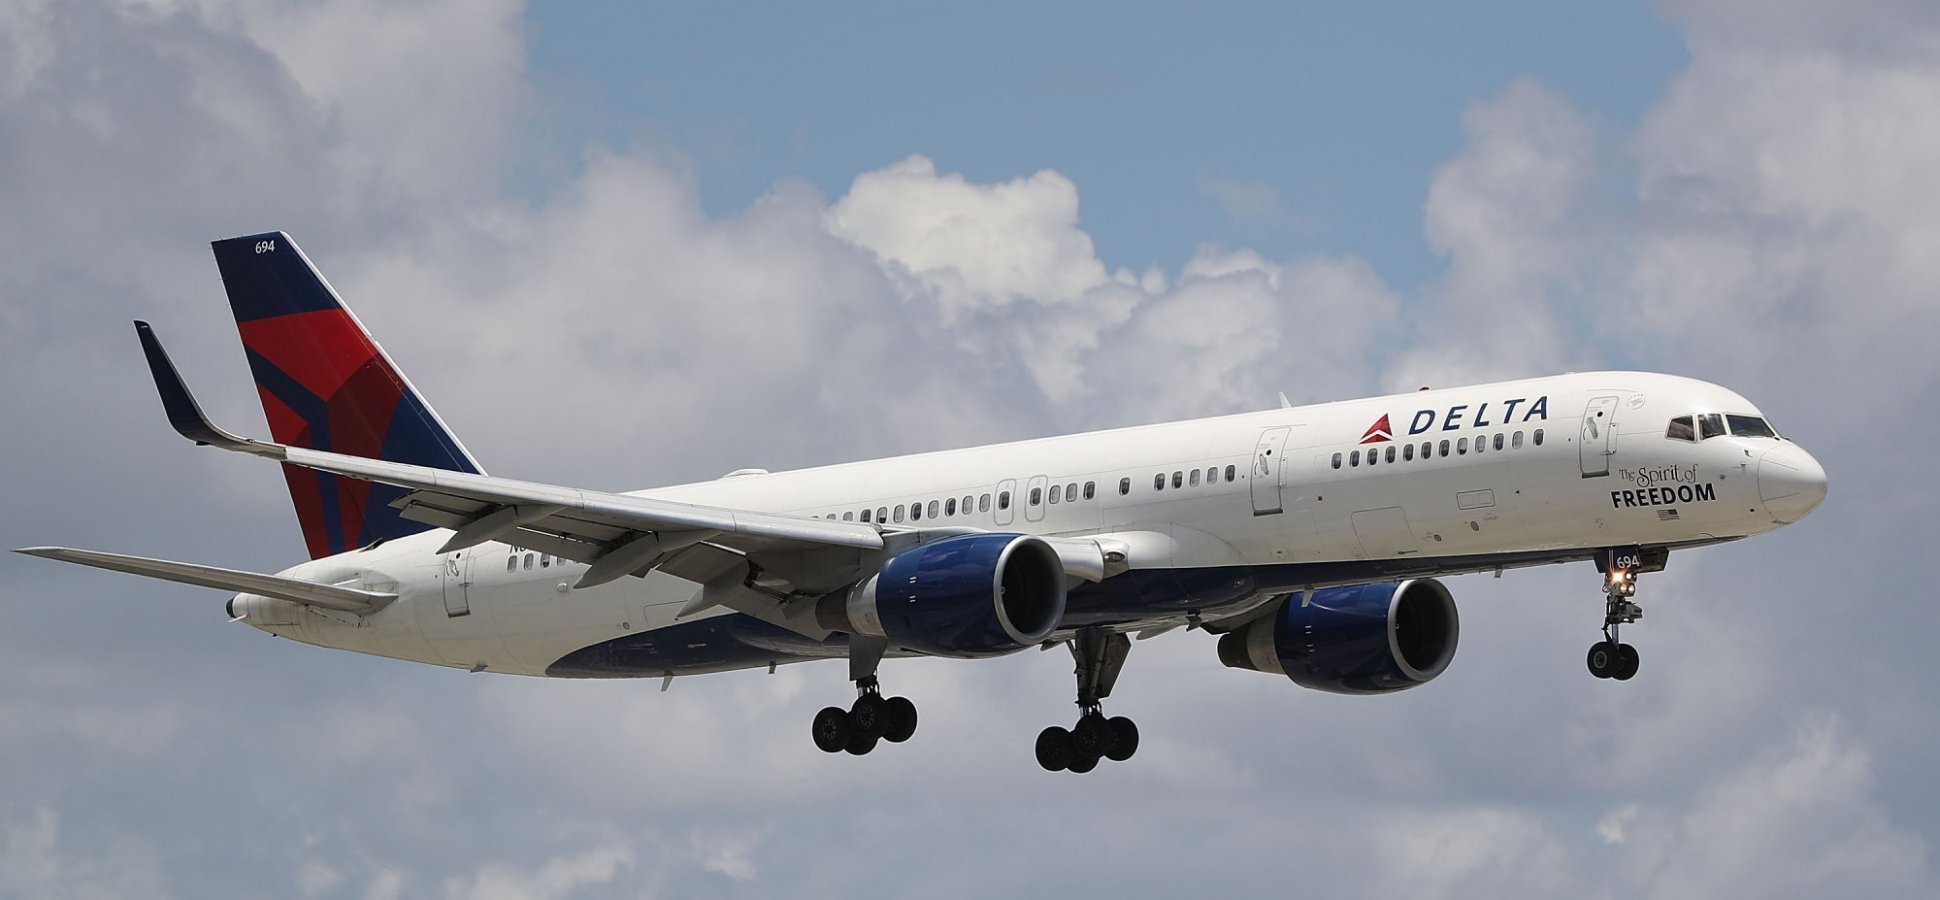 The CEO of Delta Air Lines Just Went on LinkedIn and Made a Truly Stunning Confession